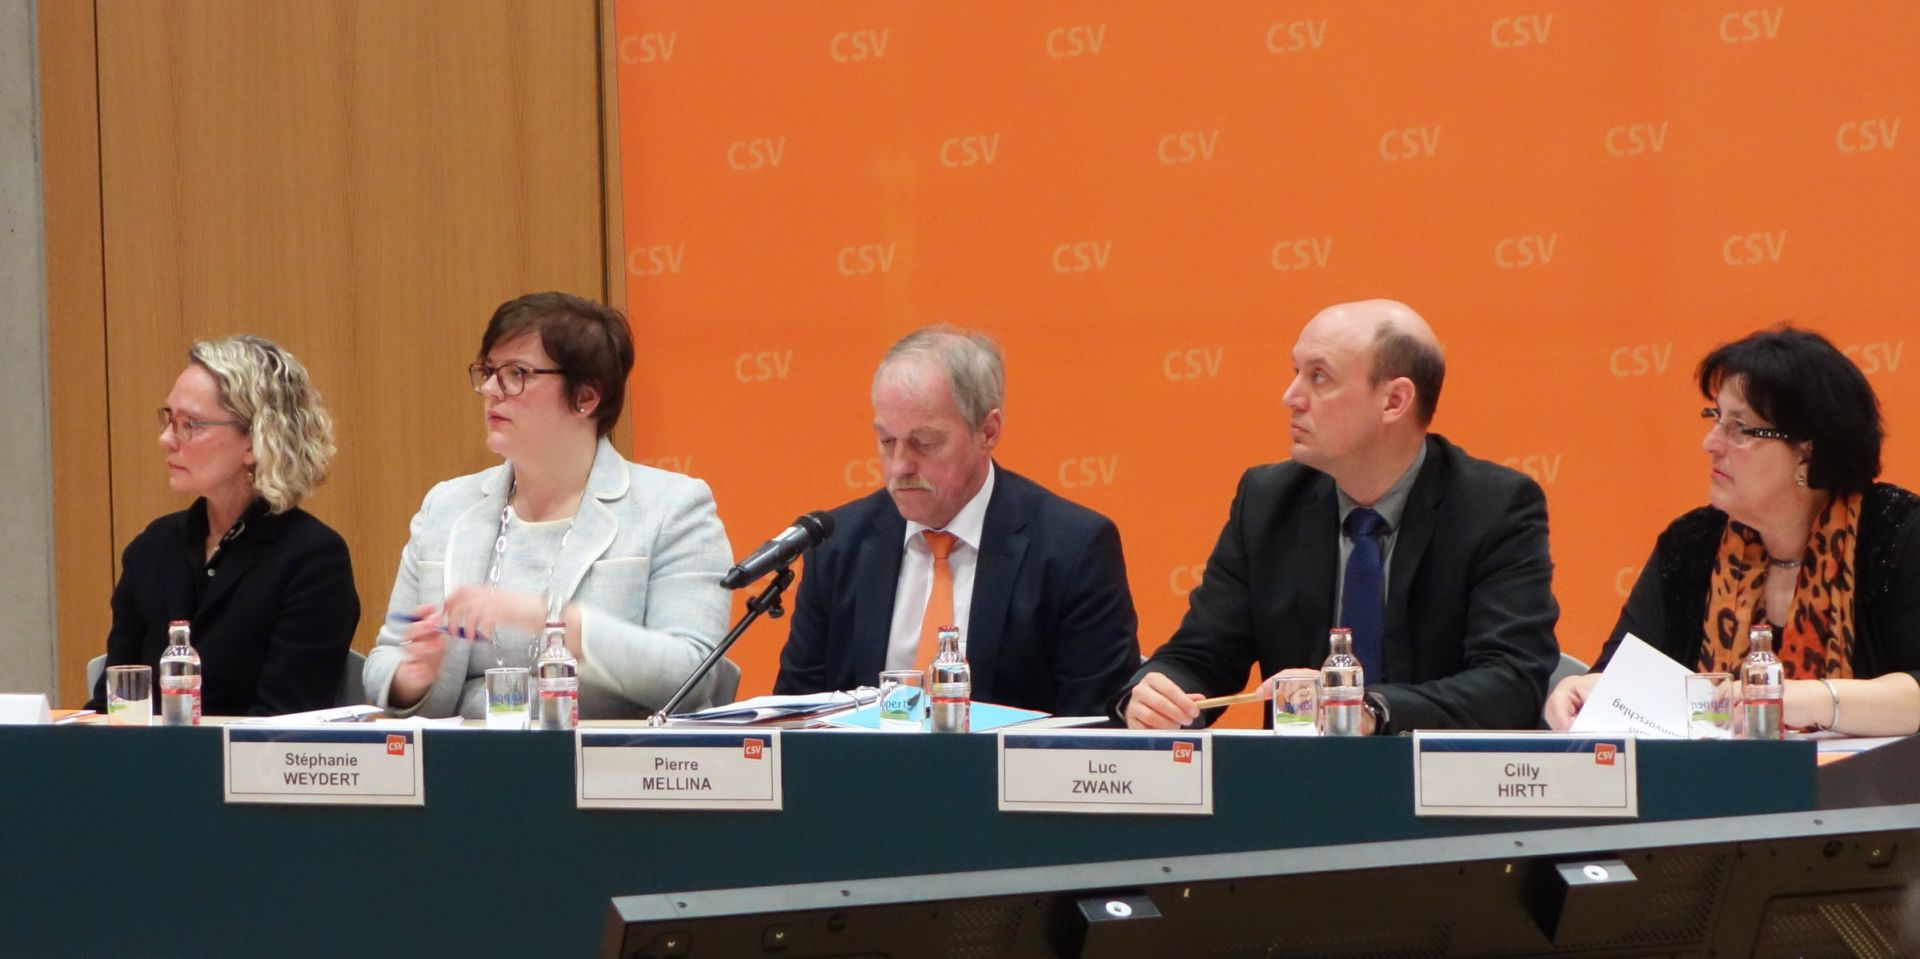 CSV 2016-03-19 Nationalkongress 2_Congrès - 23 - 2016-03-19@ 11-06-57